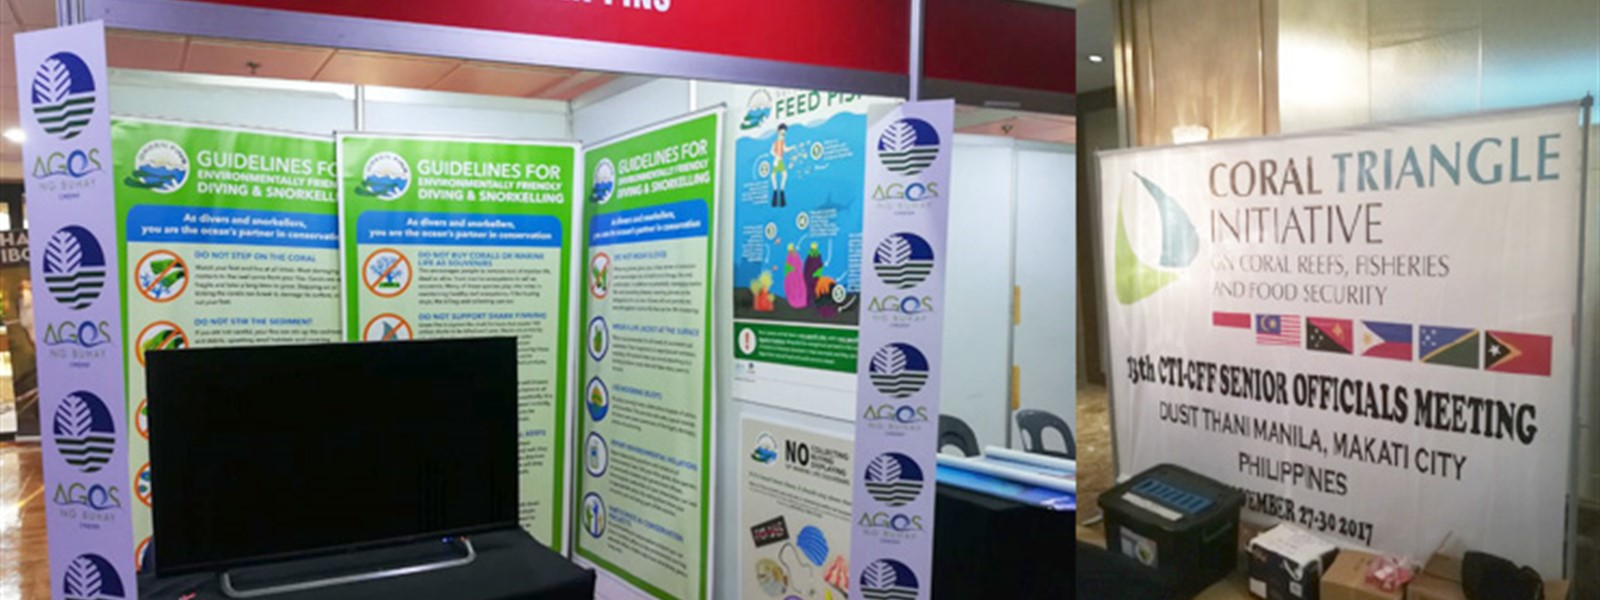 Picture of Green Fins posters at the Coral Triangle Initiative senior officials meetigs.